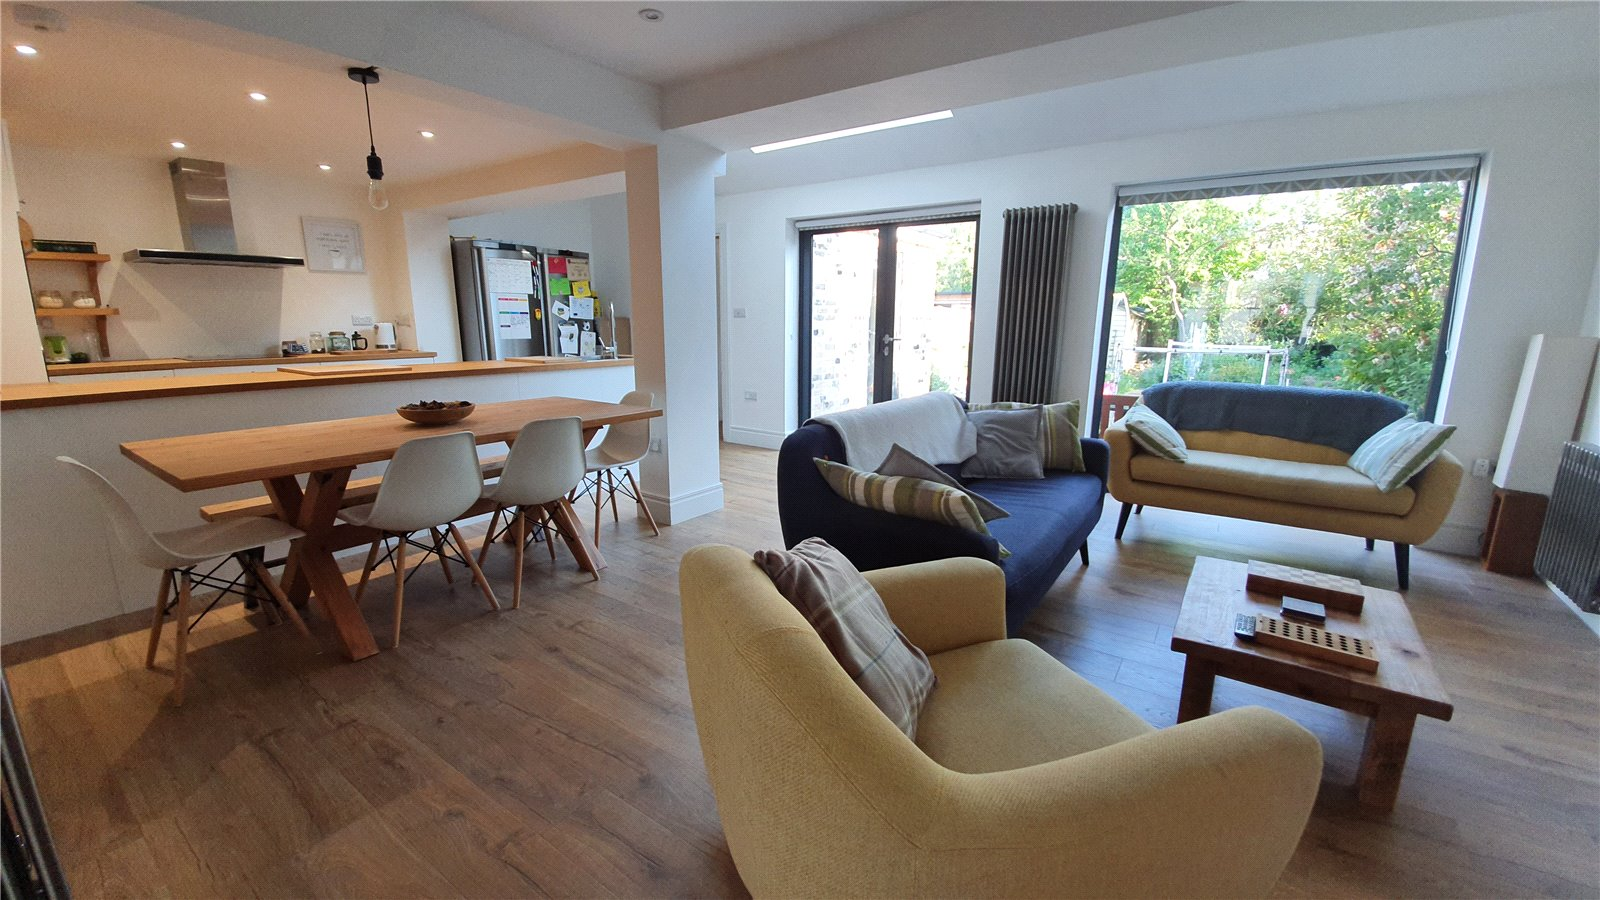 3 bed house for sale in St. Neots, PE19 1LH - Property Image 1